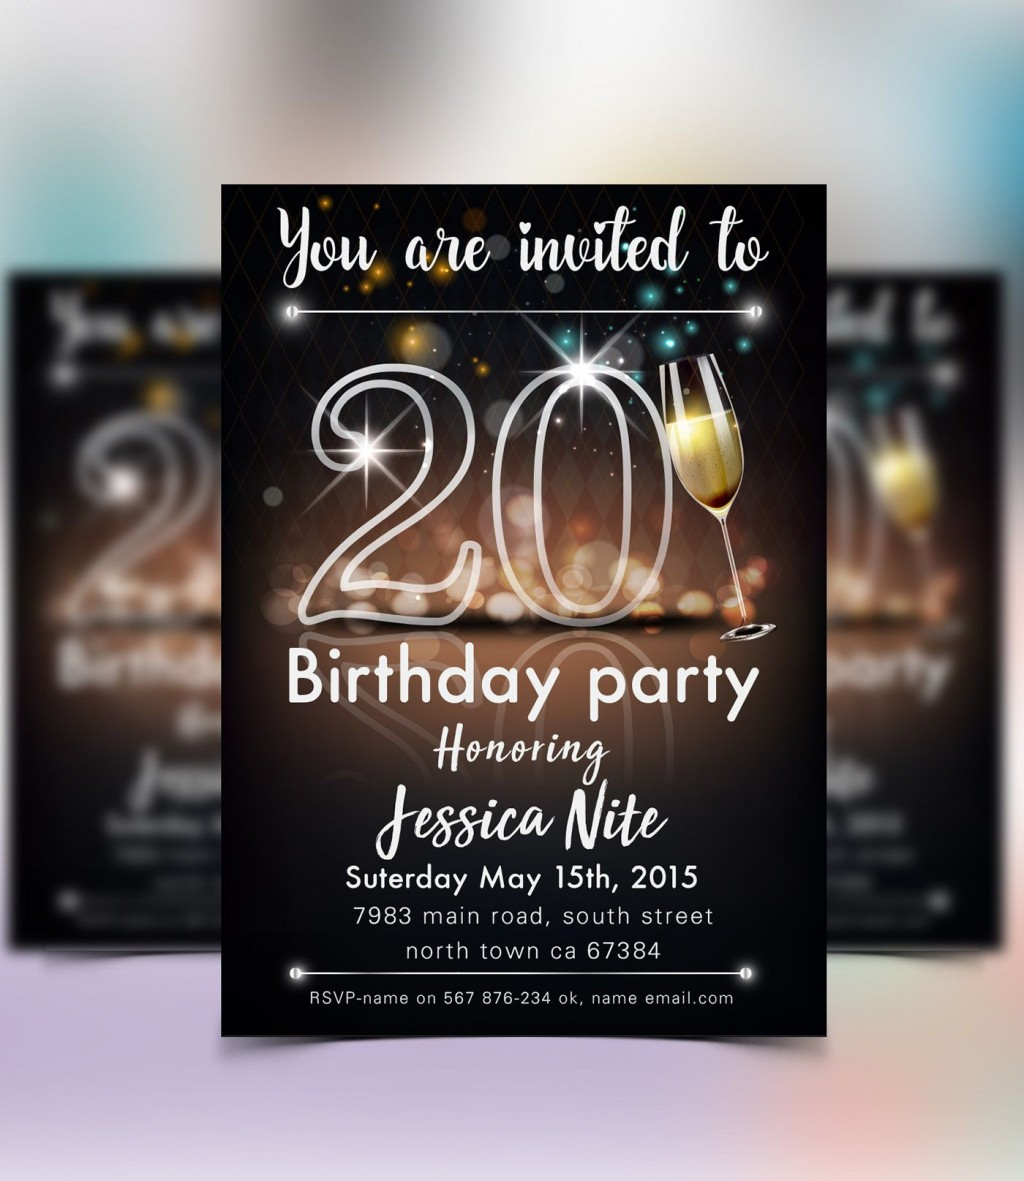 004 Phenomenal Save The Date Flyer Template Sample  Word EventLarge